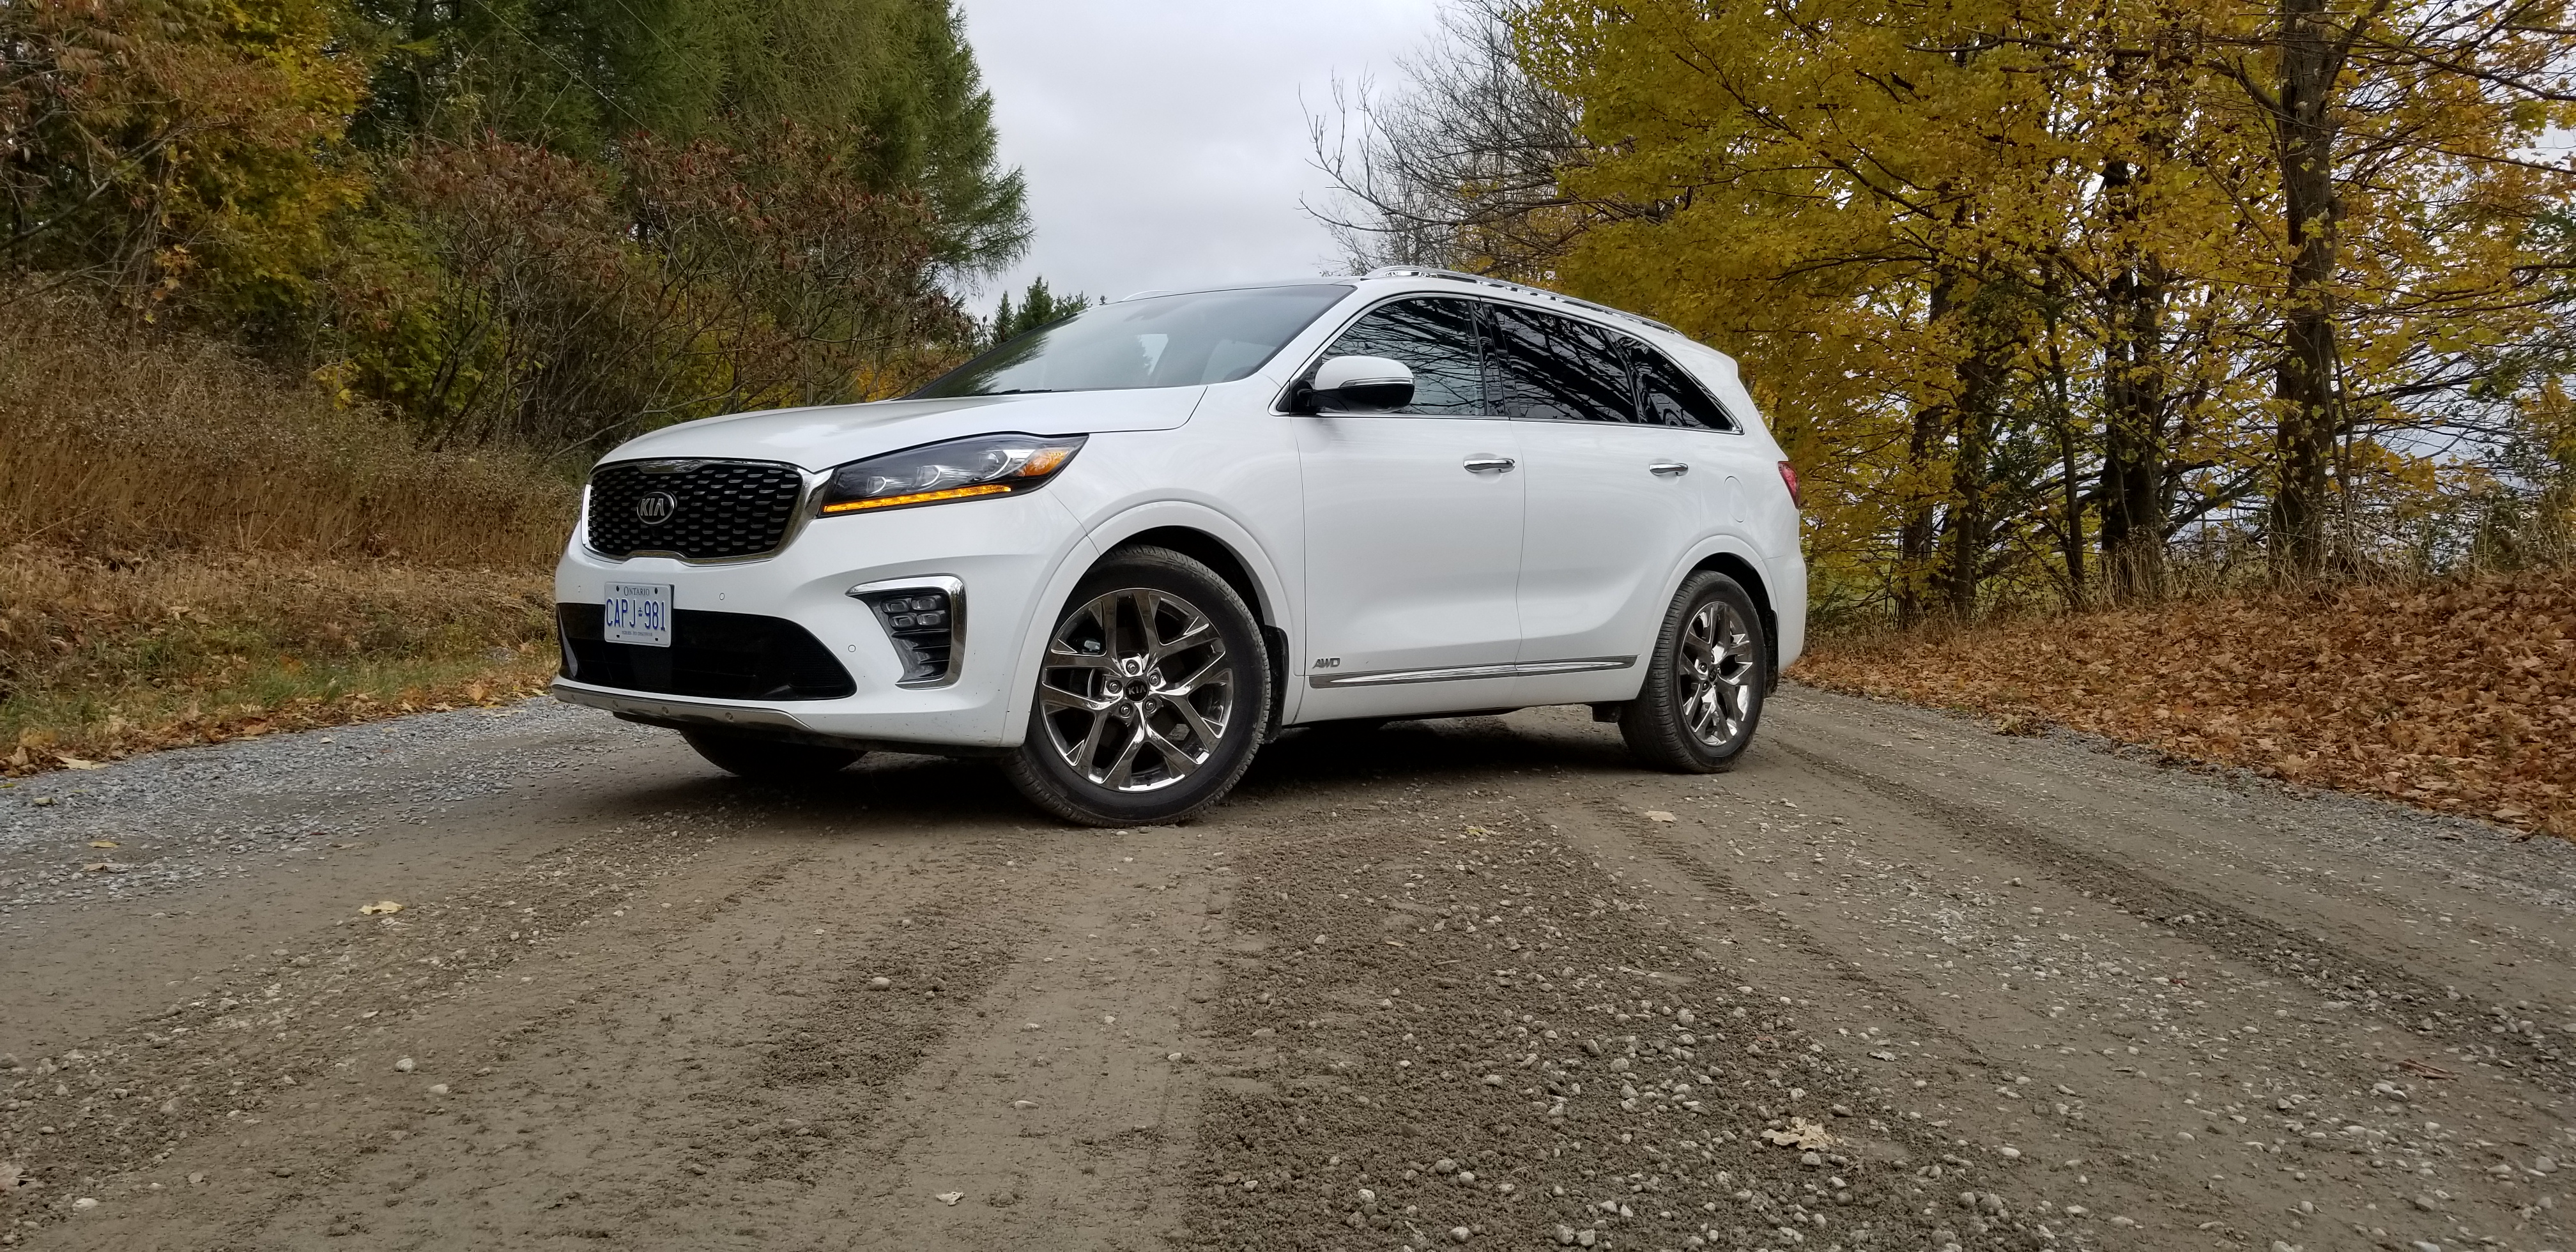 Large Suv 2019 Canadian Car Of The Year Wheels Ca